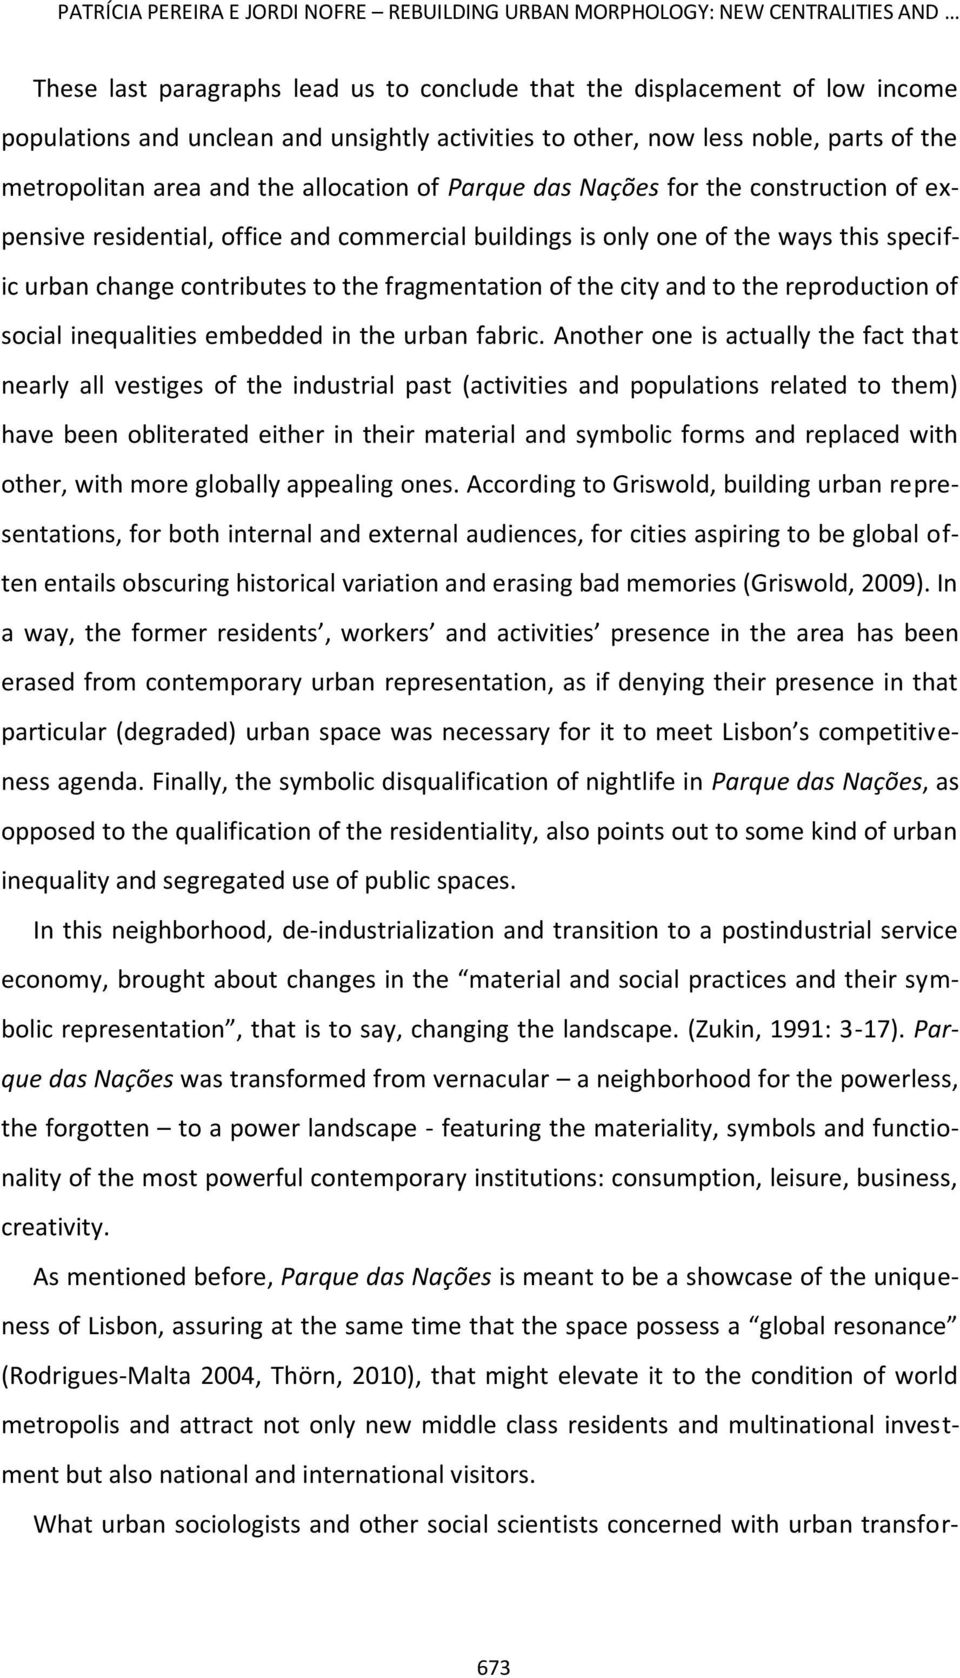 of the ways this specific urban change contributes to the fragmentation of the city and to the reproduction of social inequalities embedded in the urban fabric.